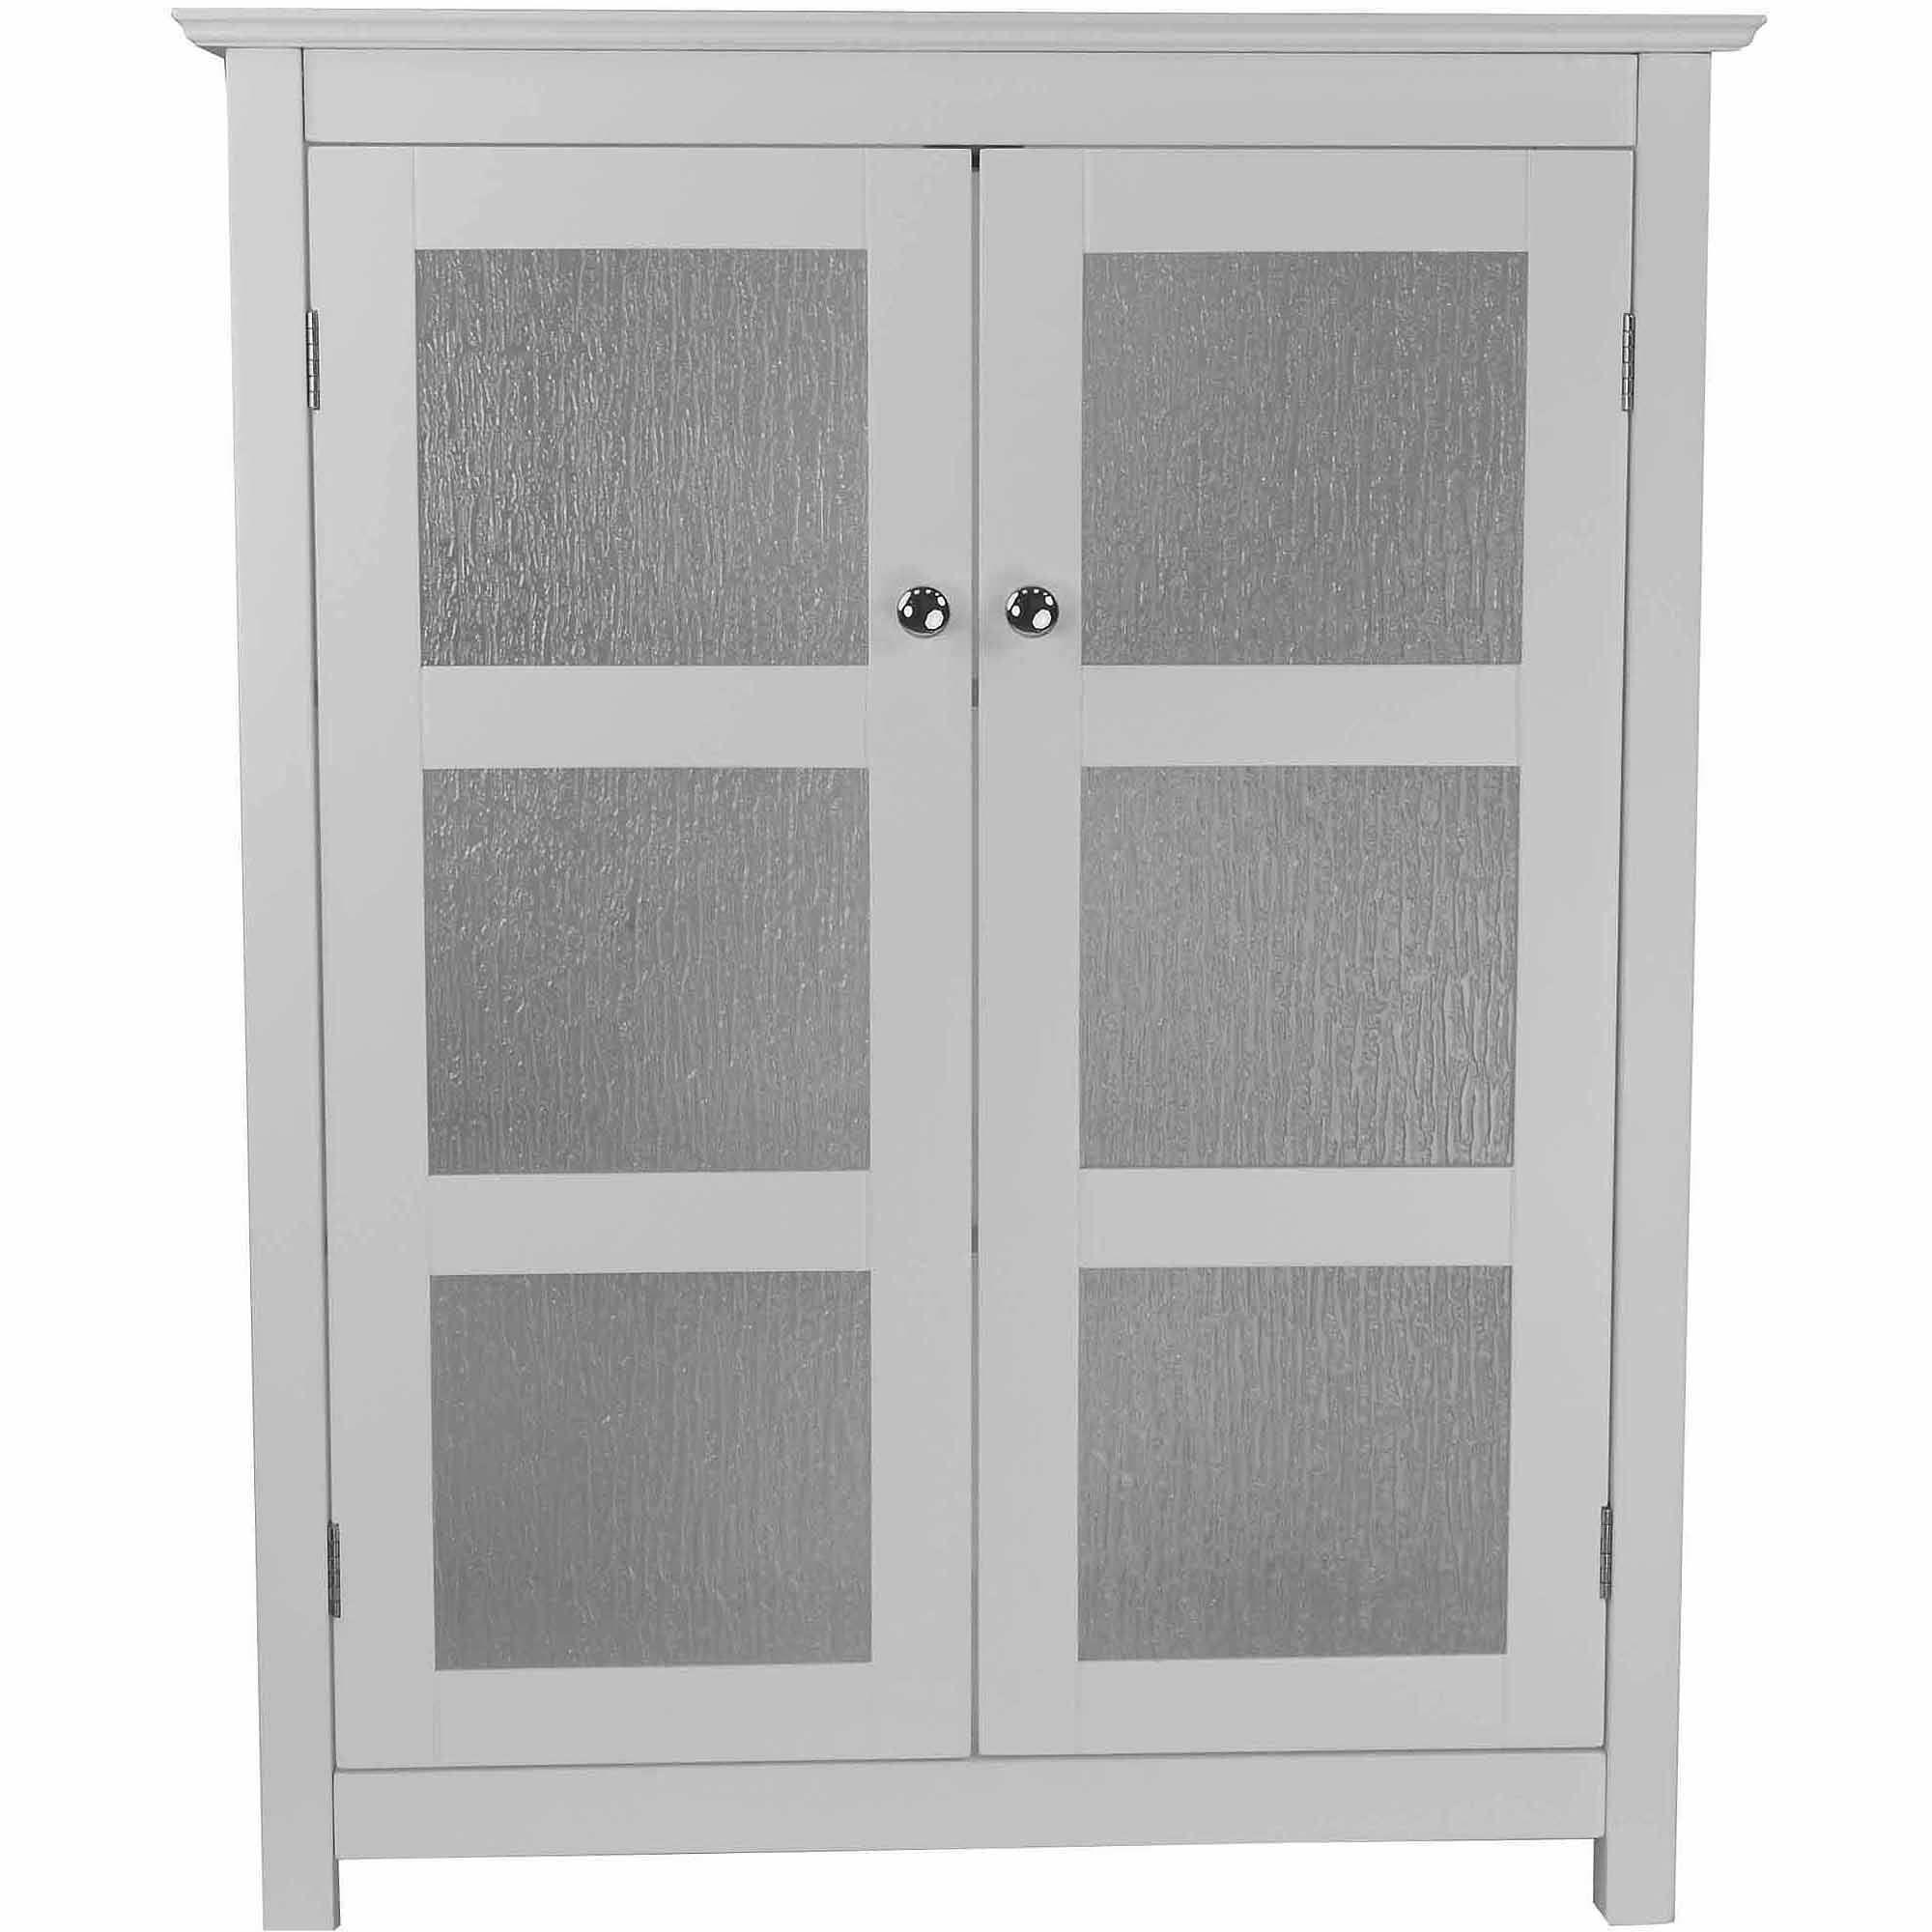 Connor Floor Cabinet With 2 Glass Doors, White   Walmart.com